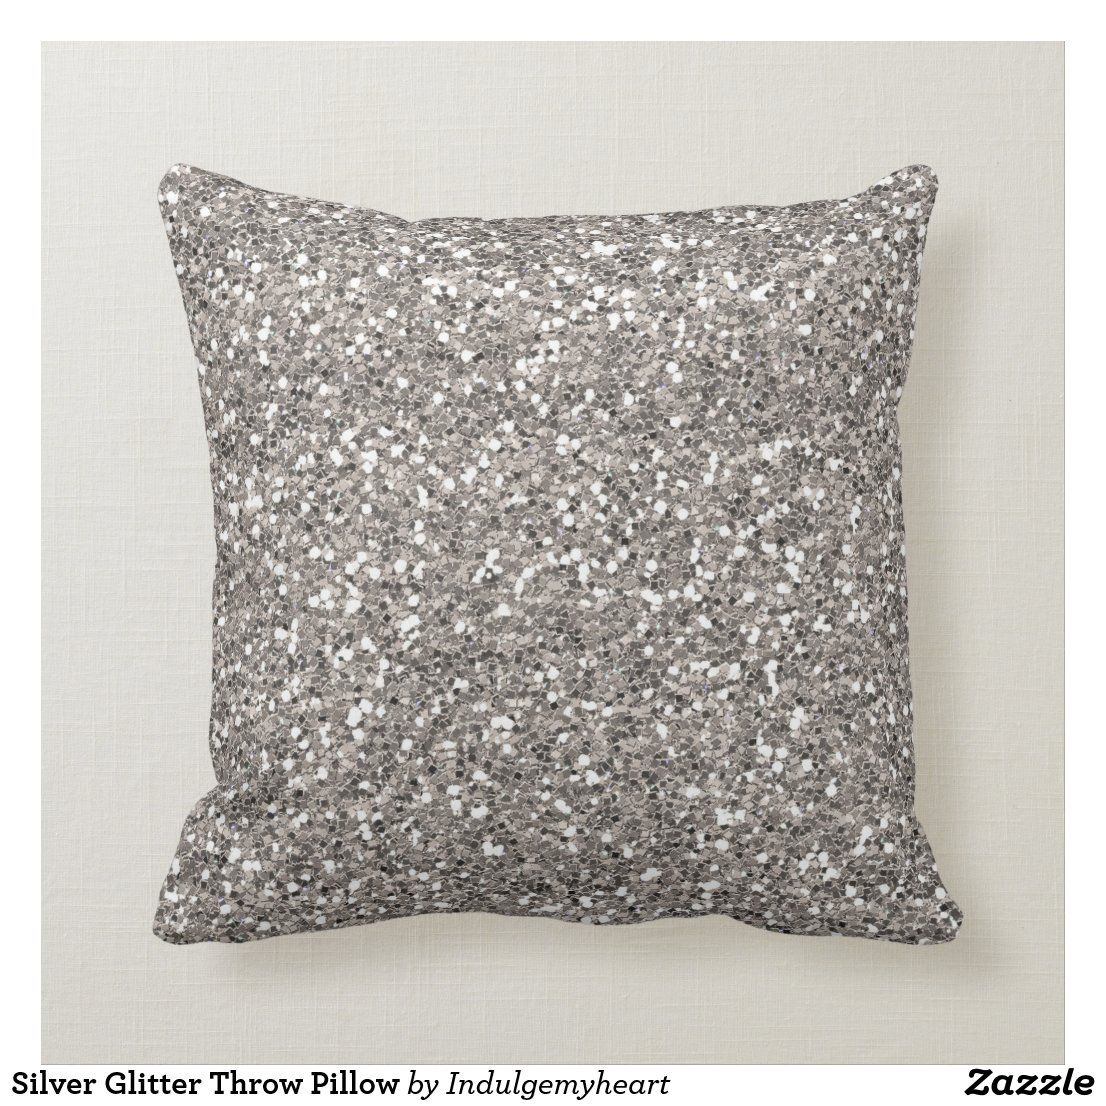 Silver Glitter Throw Pillow Zazzle Com In 2020 Glitter Pillows Throw Pillows Silver Throw Pillows